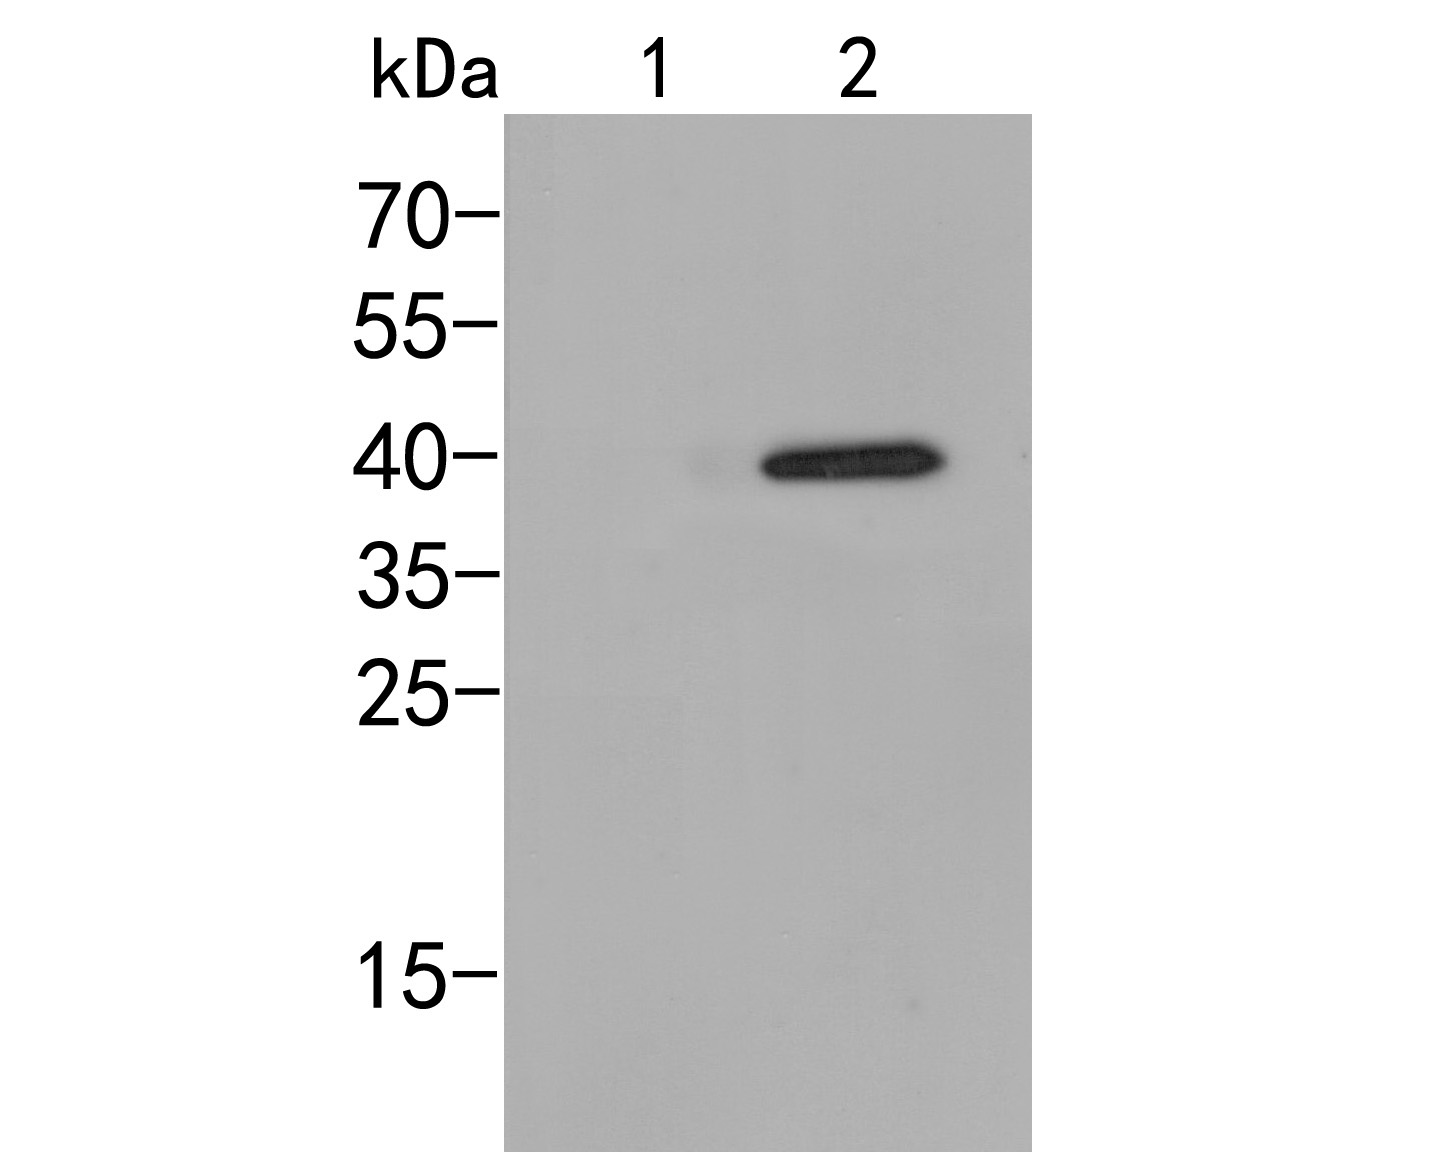 Western blot analysis of p38  (phospho T180) on different lysates. Proteins were transferred to a PVDF membrane and blocked with 5% BSA in PBS for 1 hour at room temperature. The primary antibody (ER2001-51, 1/500) was used in 5% BSA at room temperature for 2 hours. Goat Anti-Rabbit IgG - HRP Secondary Antibody (HA1001) at 1:5,000 dilution was used for 1 hour at room temperature.<br /> Positive control: <br /> Lane 1: 293 cell lysate, untreated with UV<br /> Lane 2: 293 cell lysate, treated with UV for 60 minutes